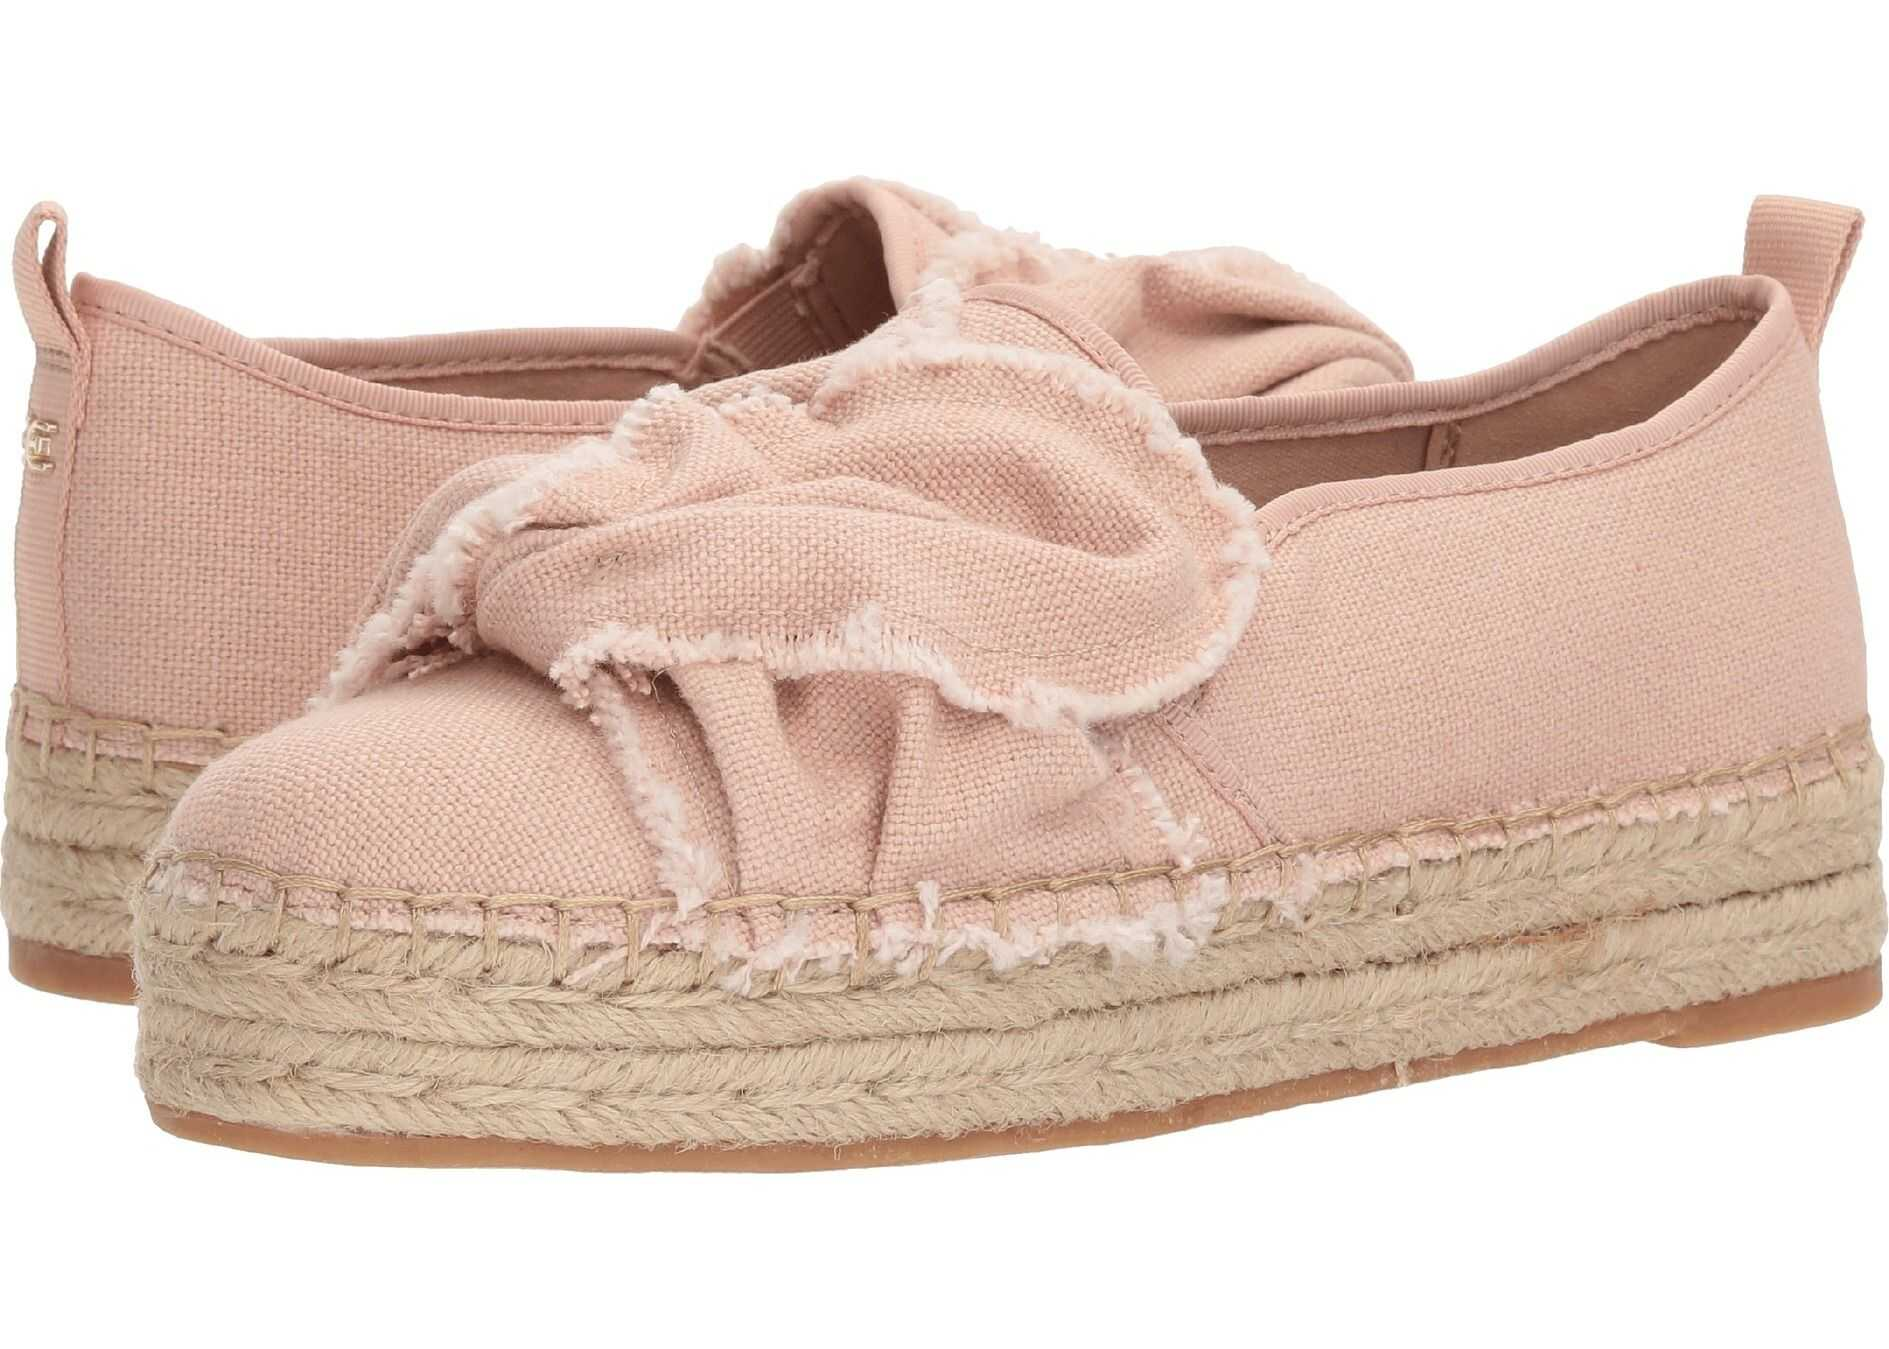 Sam Edelman Cabrera Shell Pink Casual Washed Out Canvas